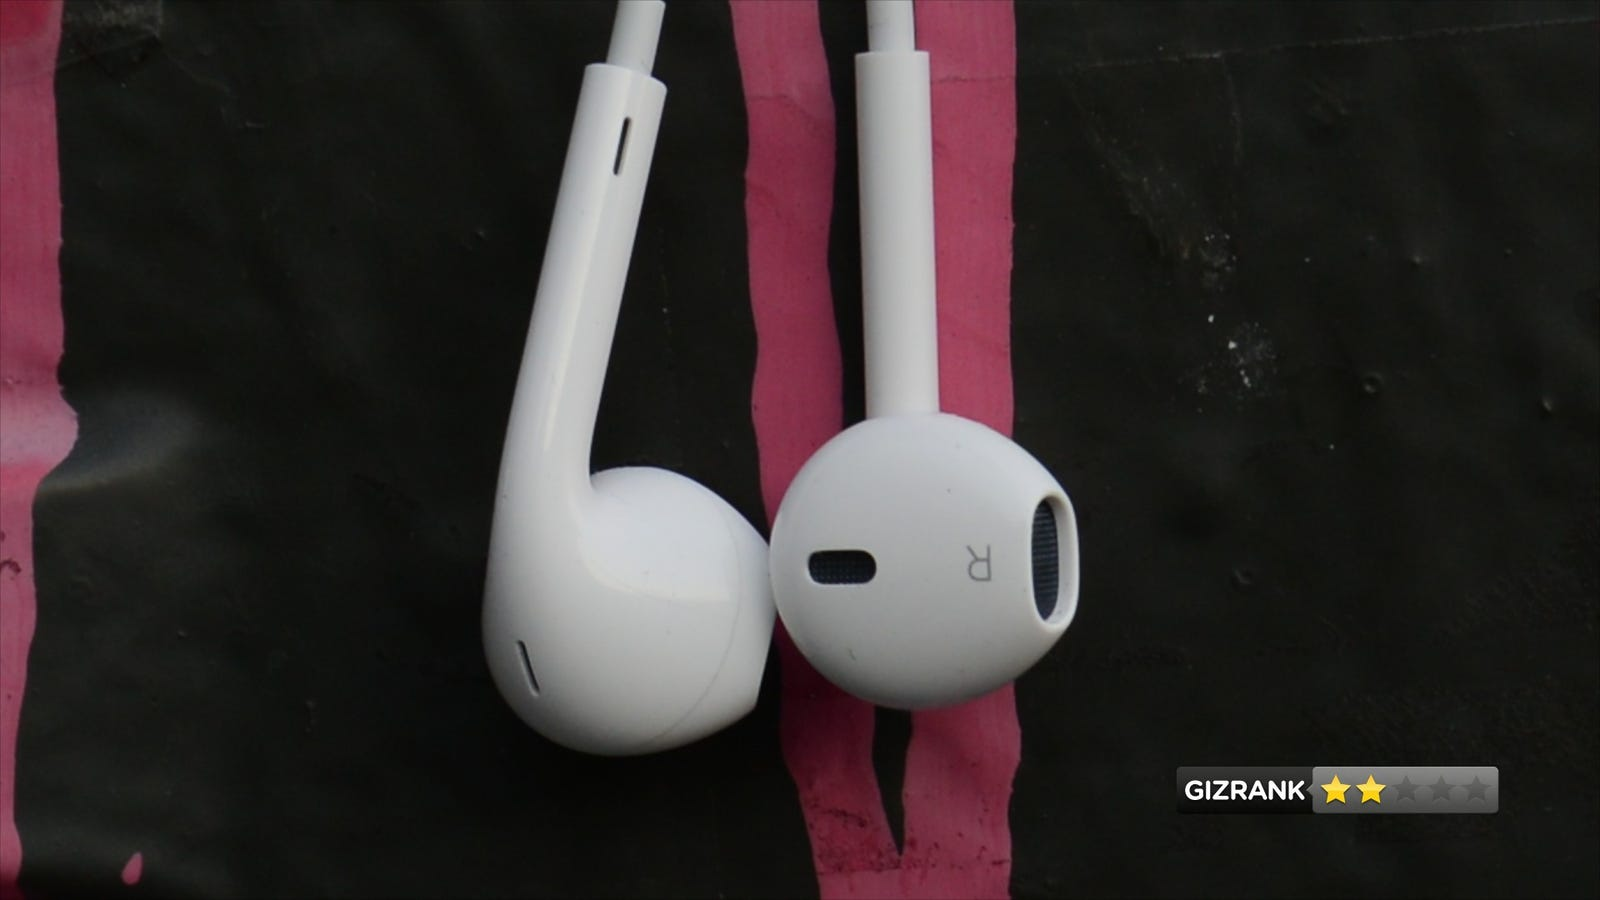 detroit red wings earbuds - Apple EarPods Review: Better! (But Still Garbage)